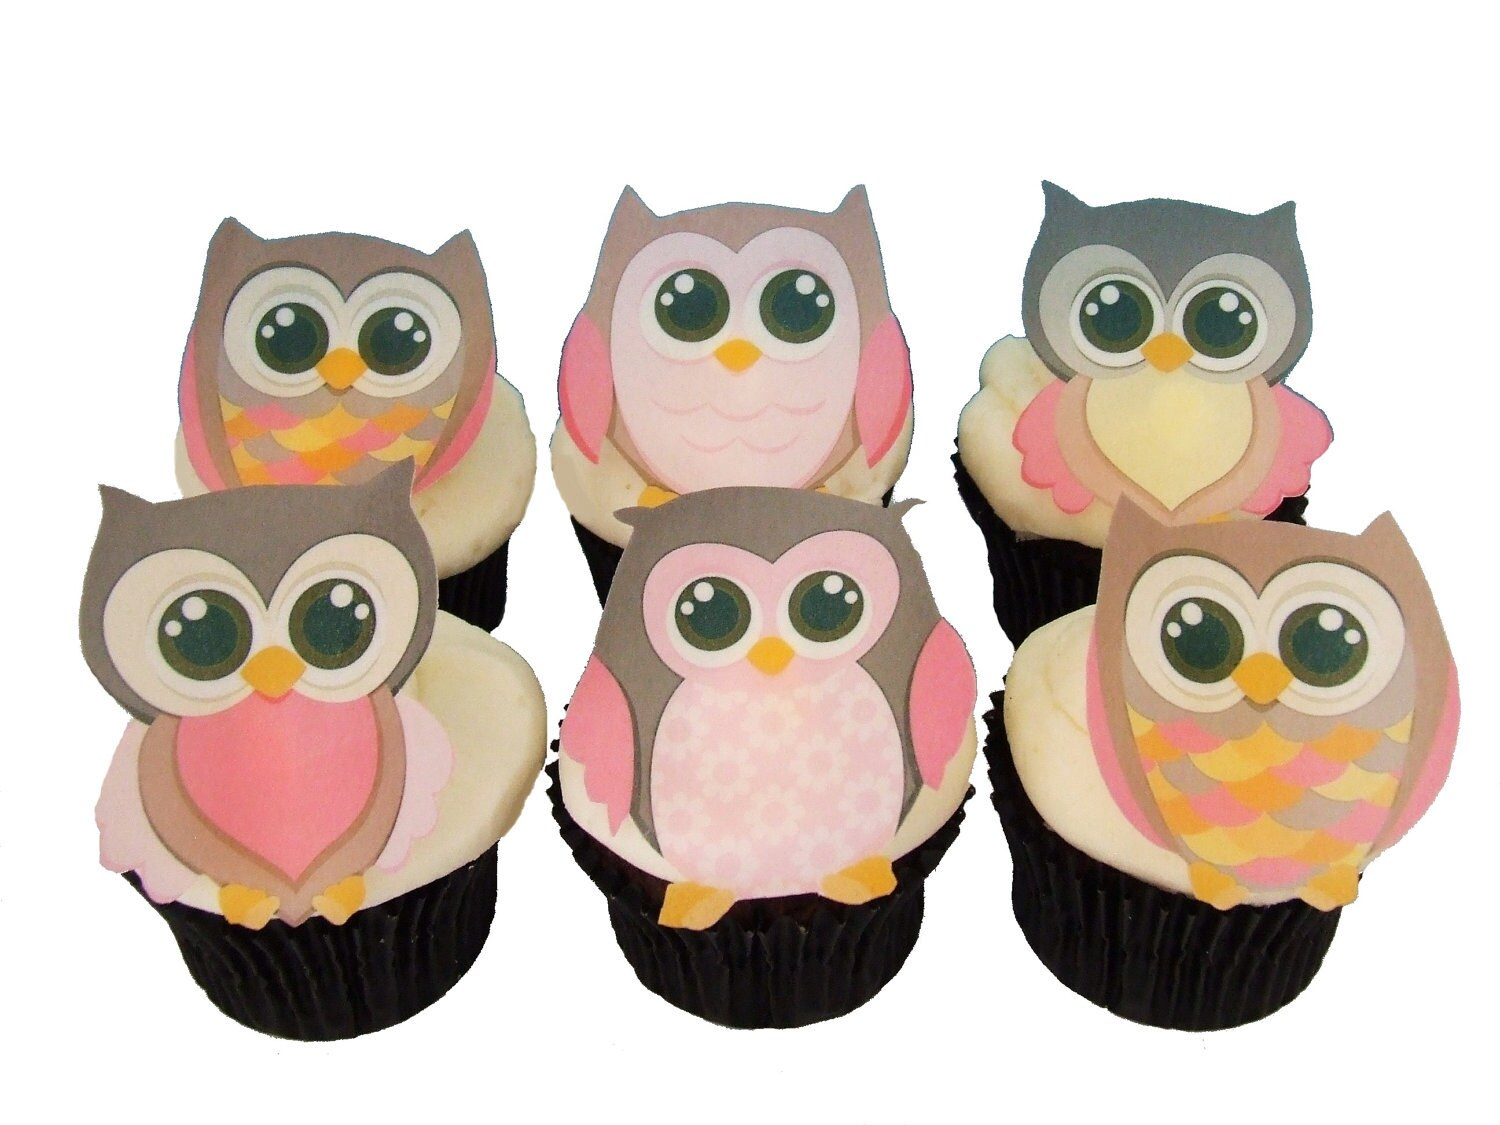 Edible Cake Image Owl : 12 EDIBLE OWLS Girls Cupcake Toppers by incrEDIBLEtoppers